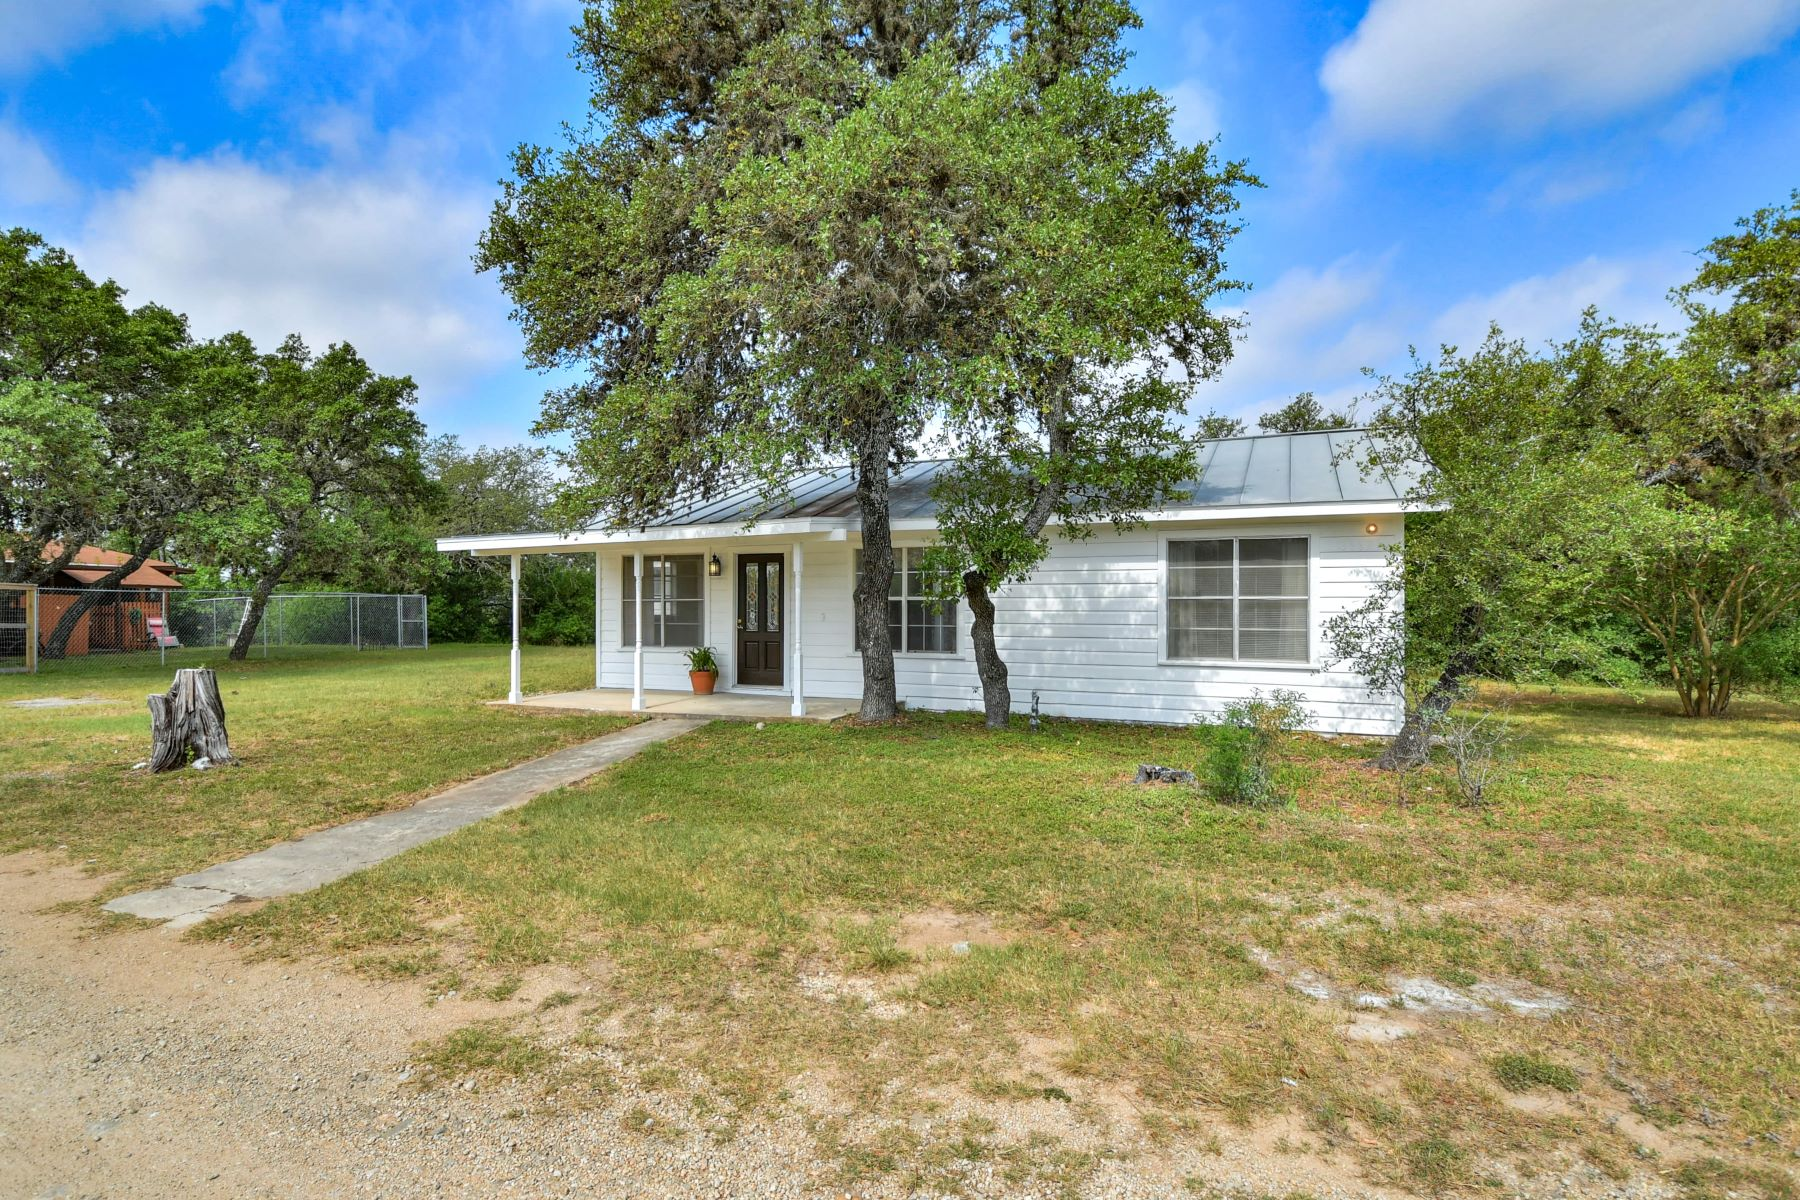 Single Family Homes for Sale at Home on Bandera Road Frontage 13663 Bandera Road Unit 2 Helotes, Texas 78023 United States